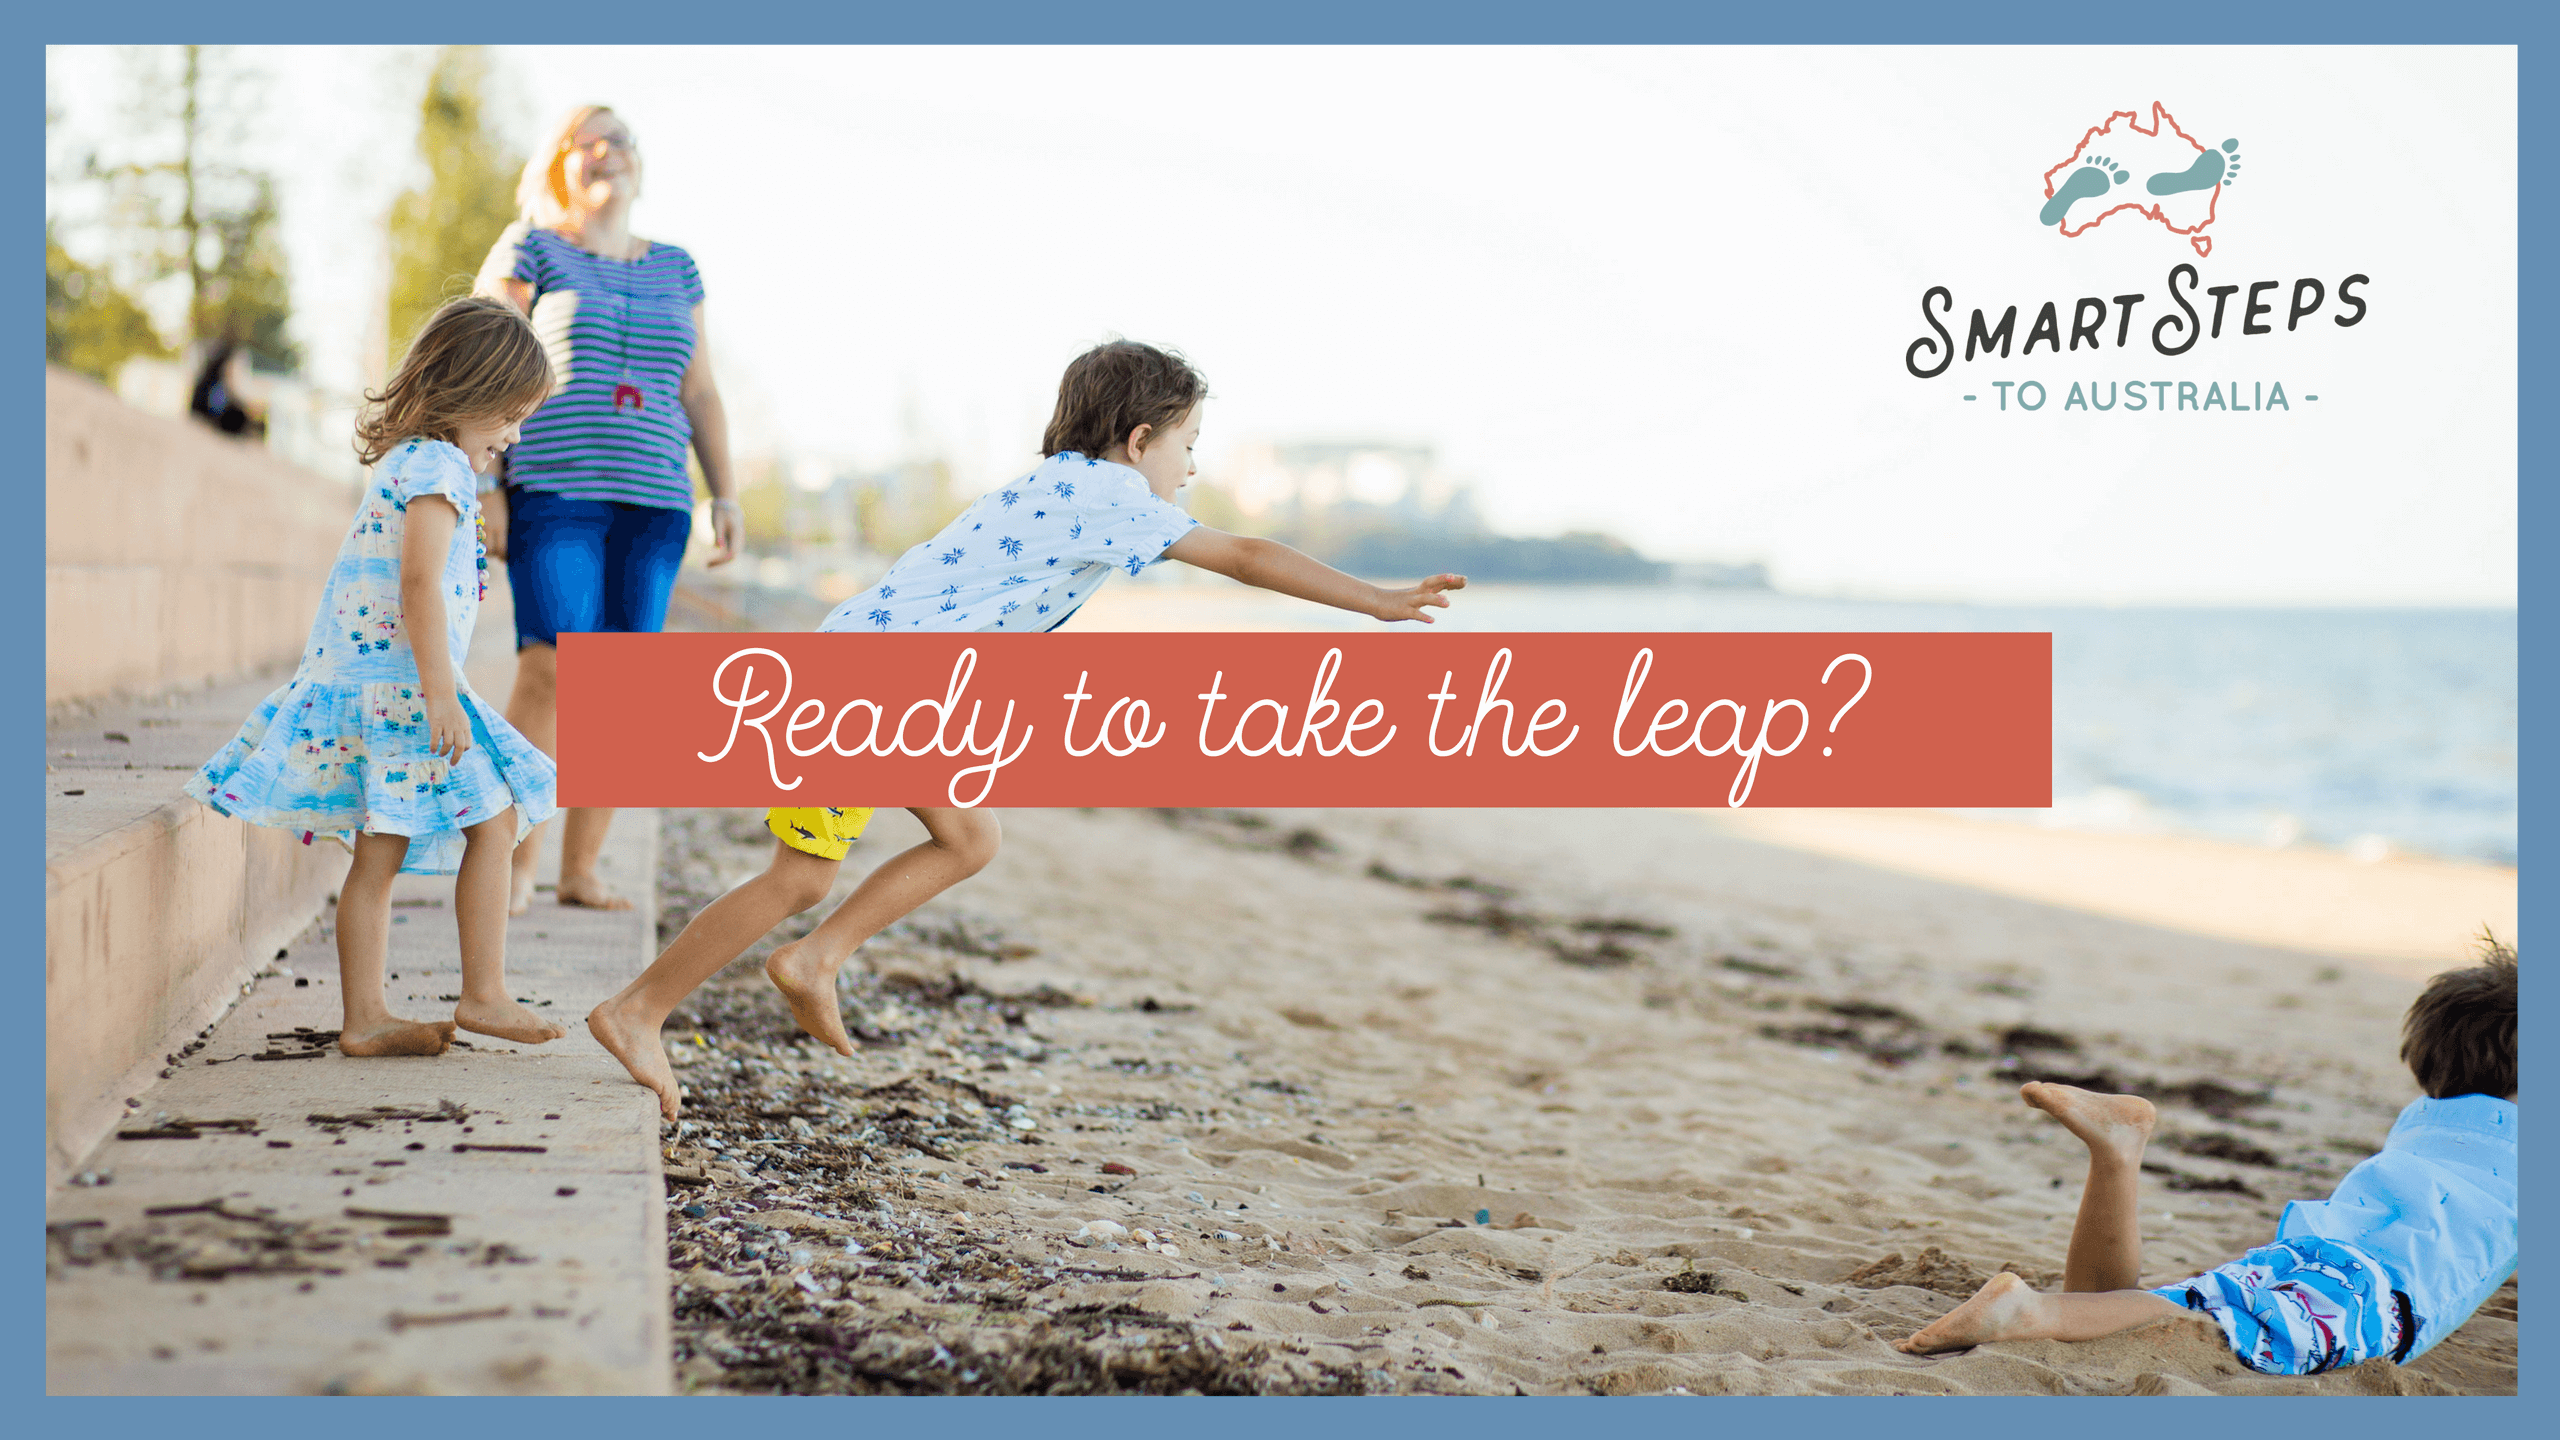 Kids on a beach jumping - Emigrate to Australia in six easy steps